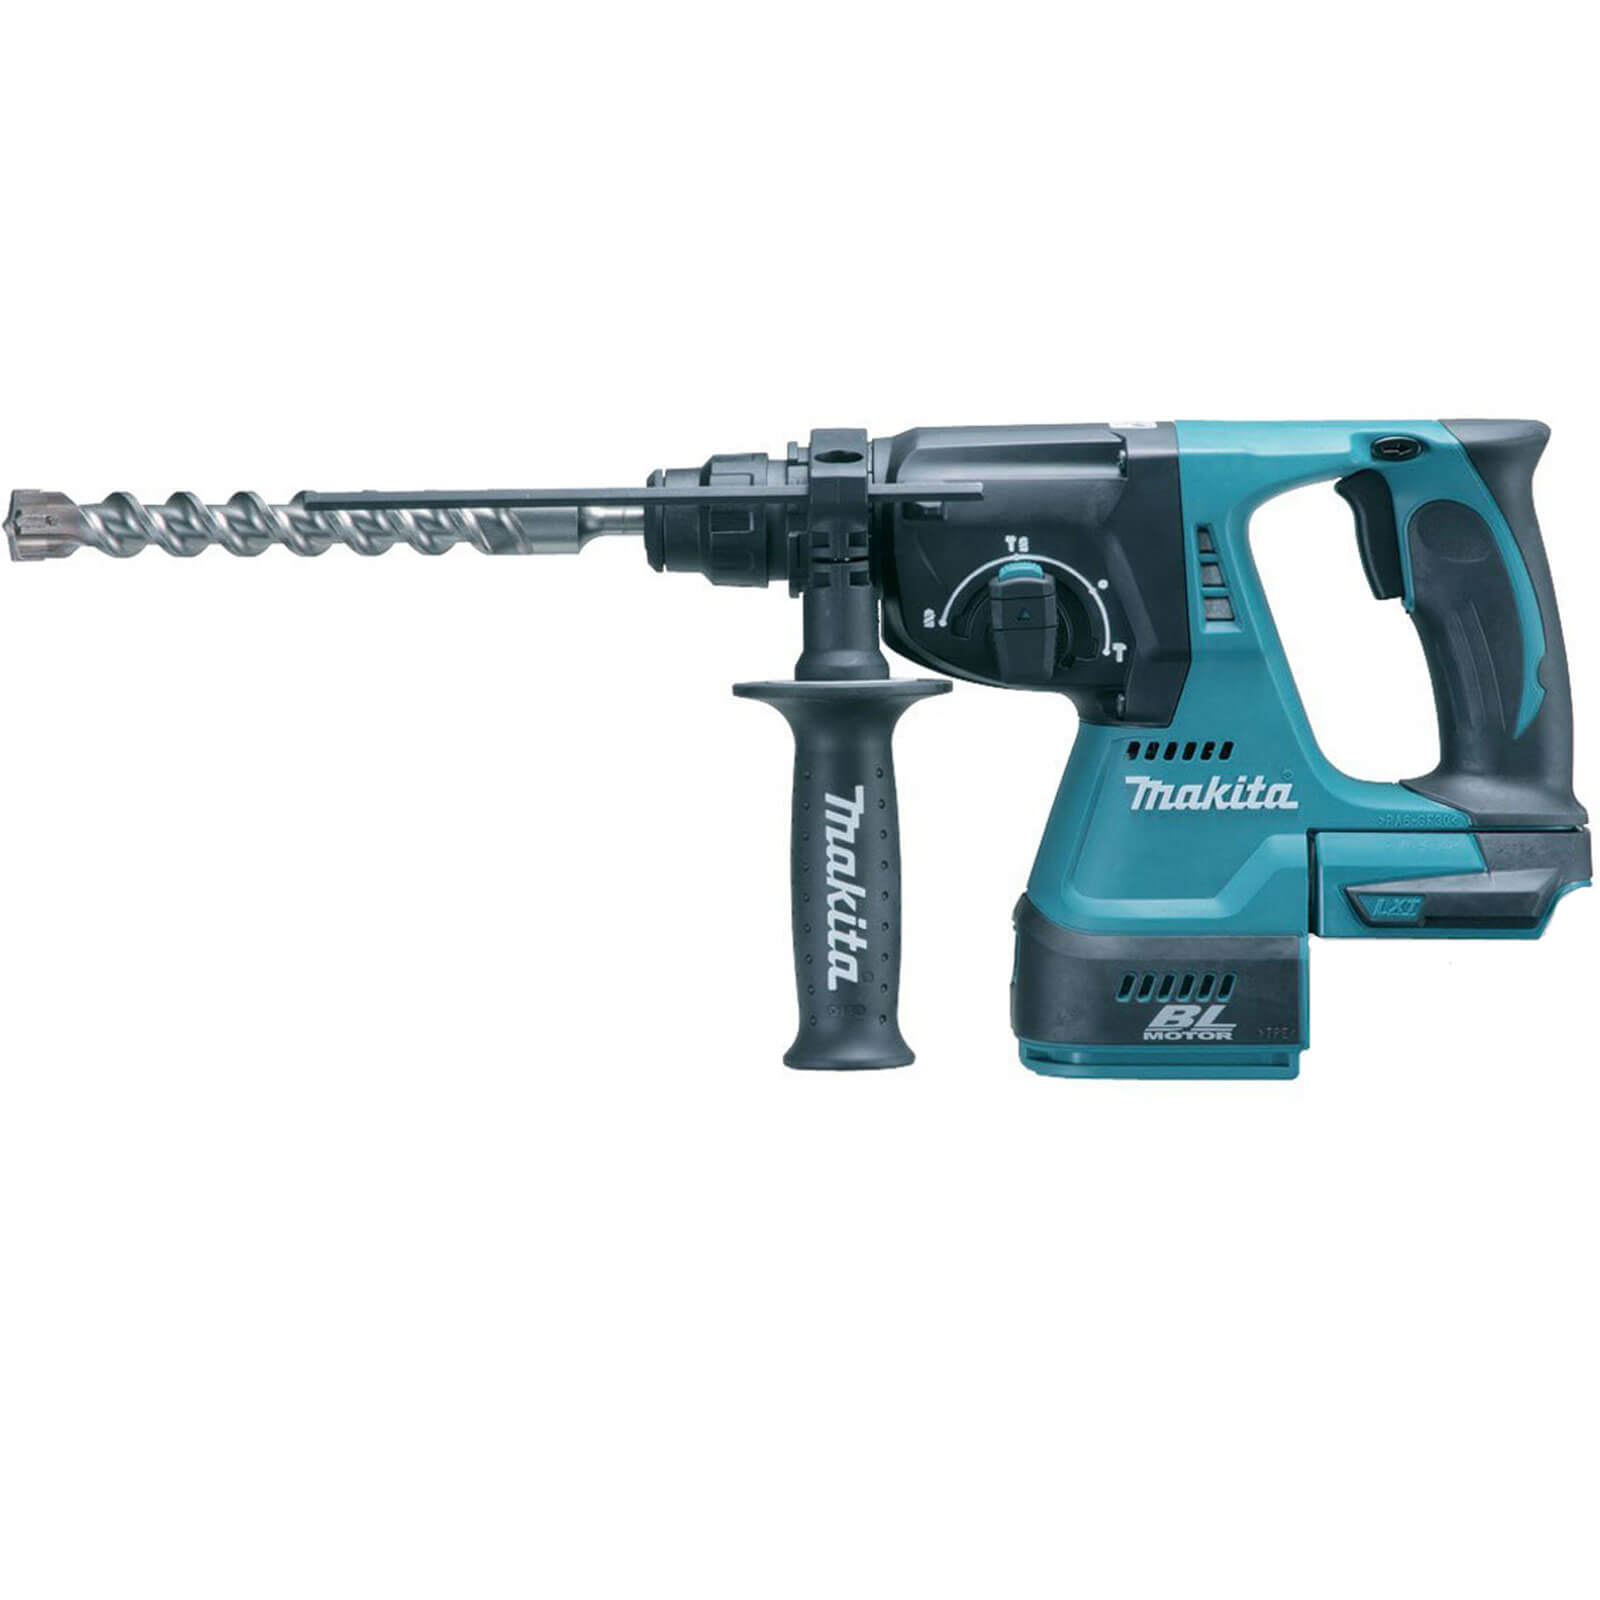 Image of Makita DHR242Z 18v Cordless SDS Plus Rotary Hammer Drill without Battery or Charger